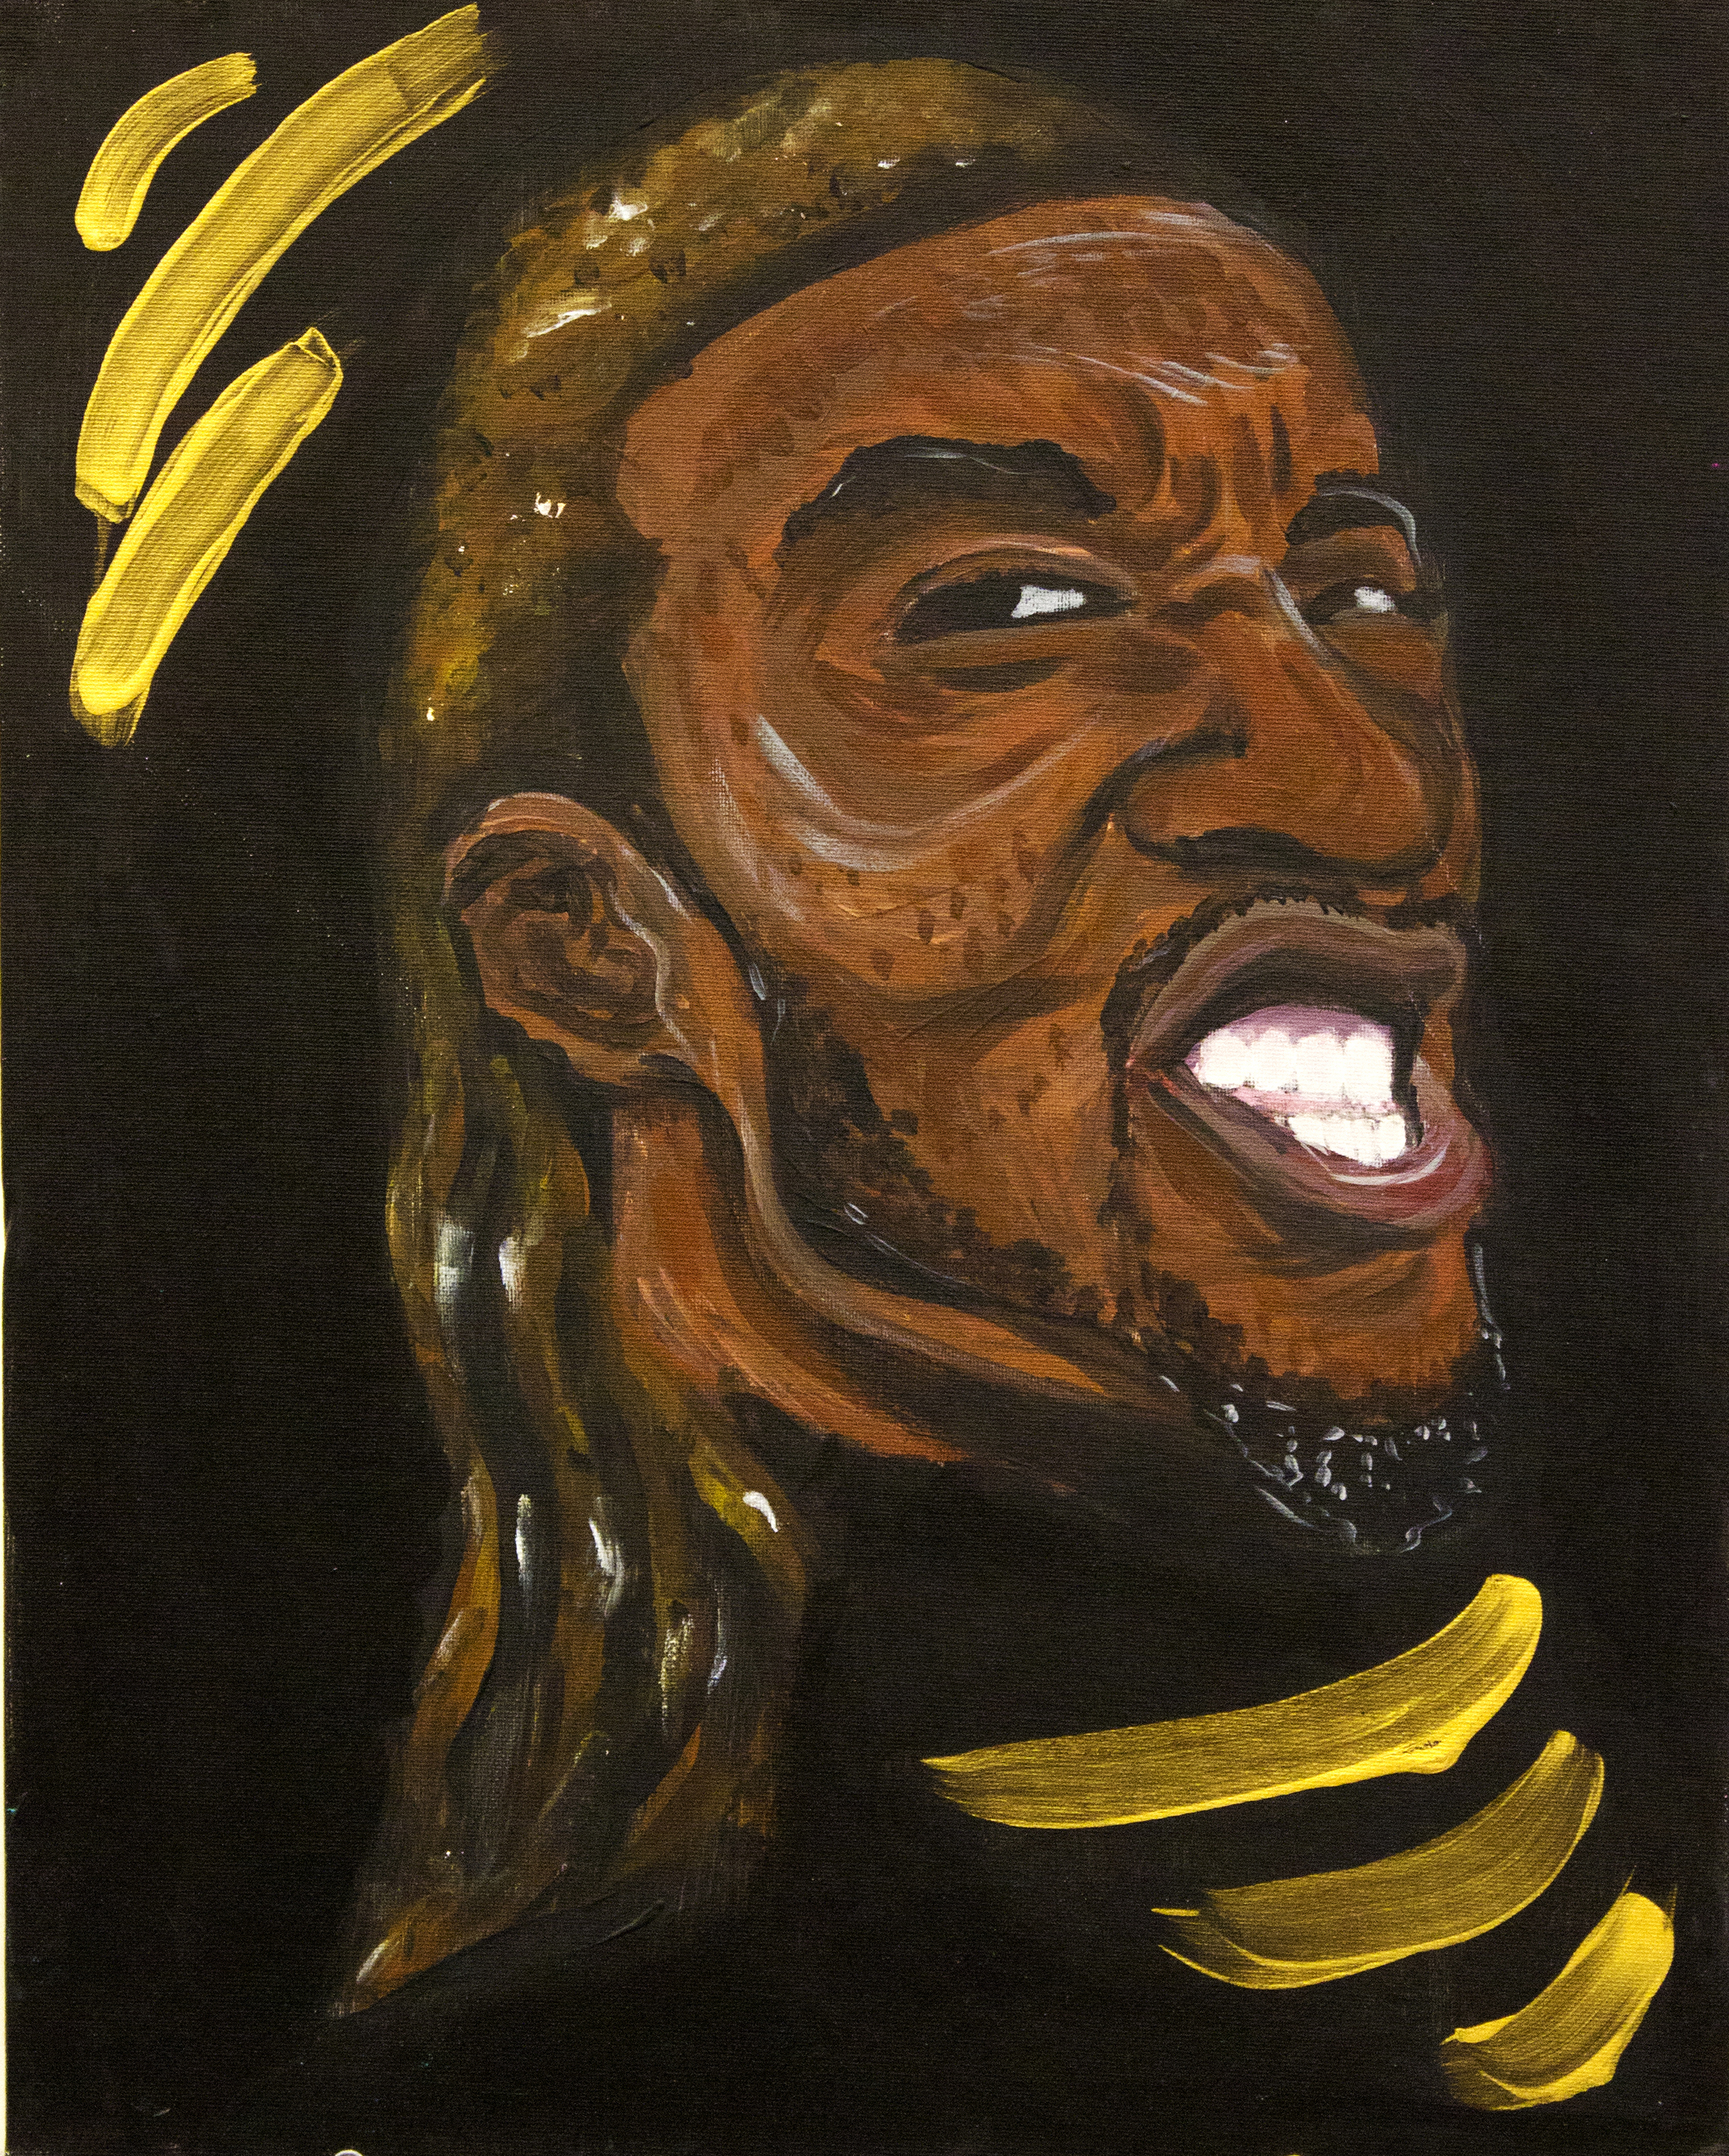 More Than Black (Yahdon)  2012, acrylic on canvas, 18in x 24in